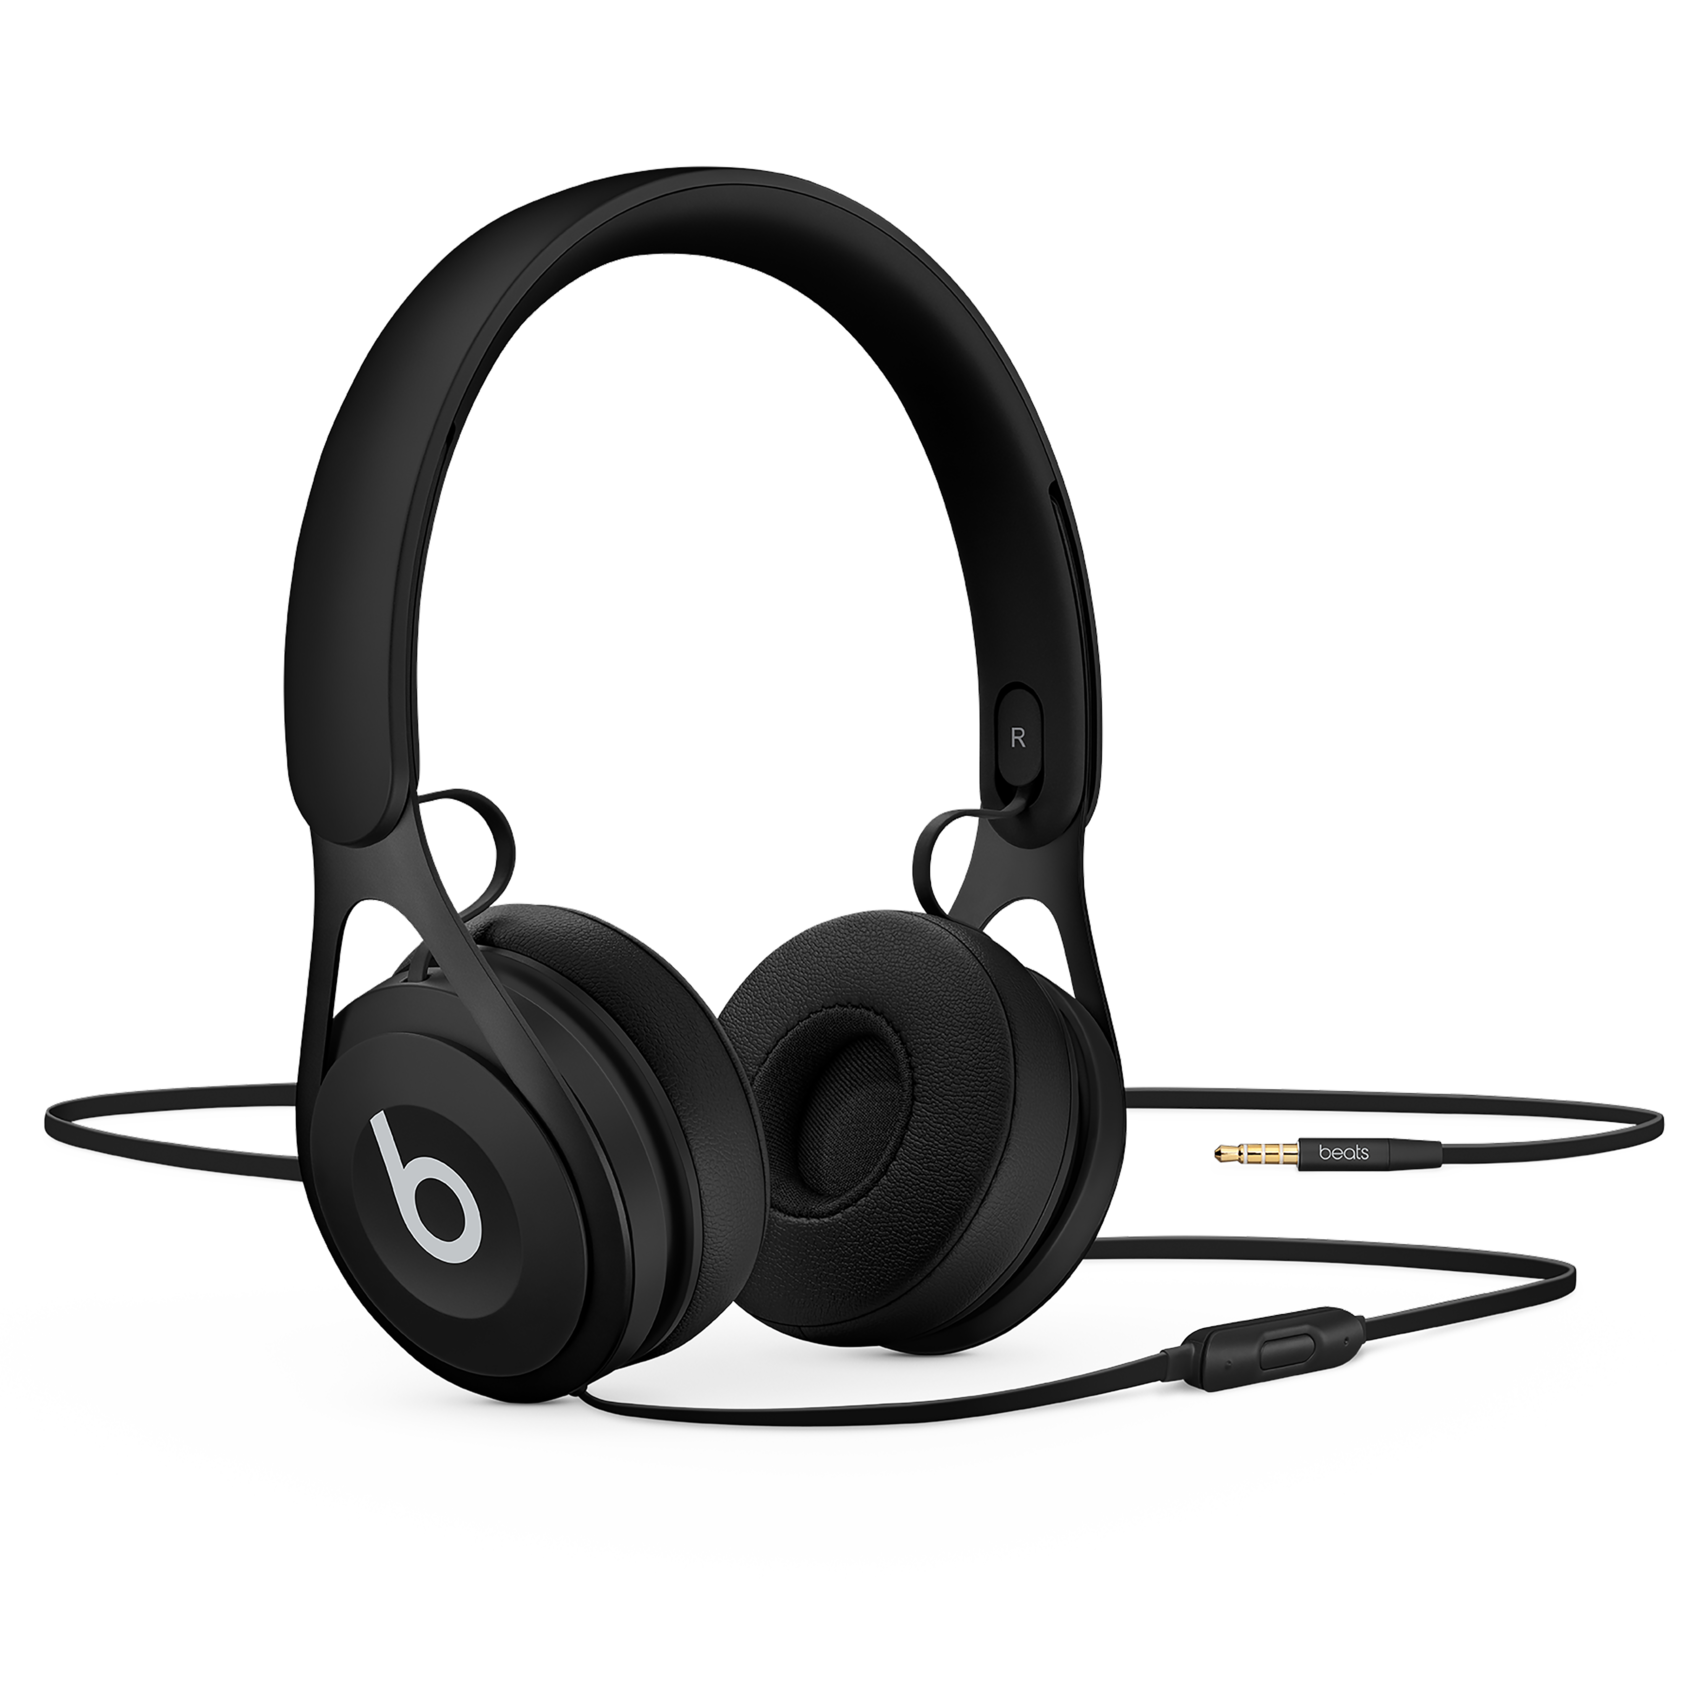 Beats EP - All Reviews - Beats by Dre